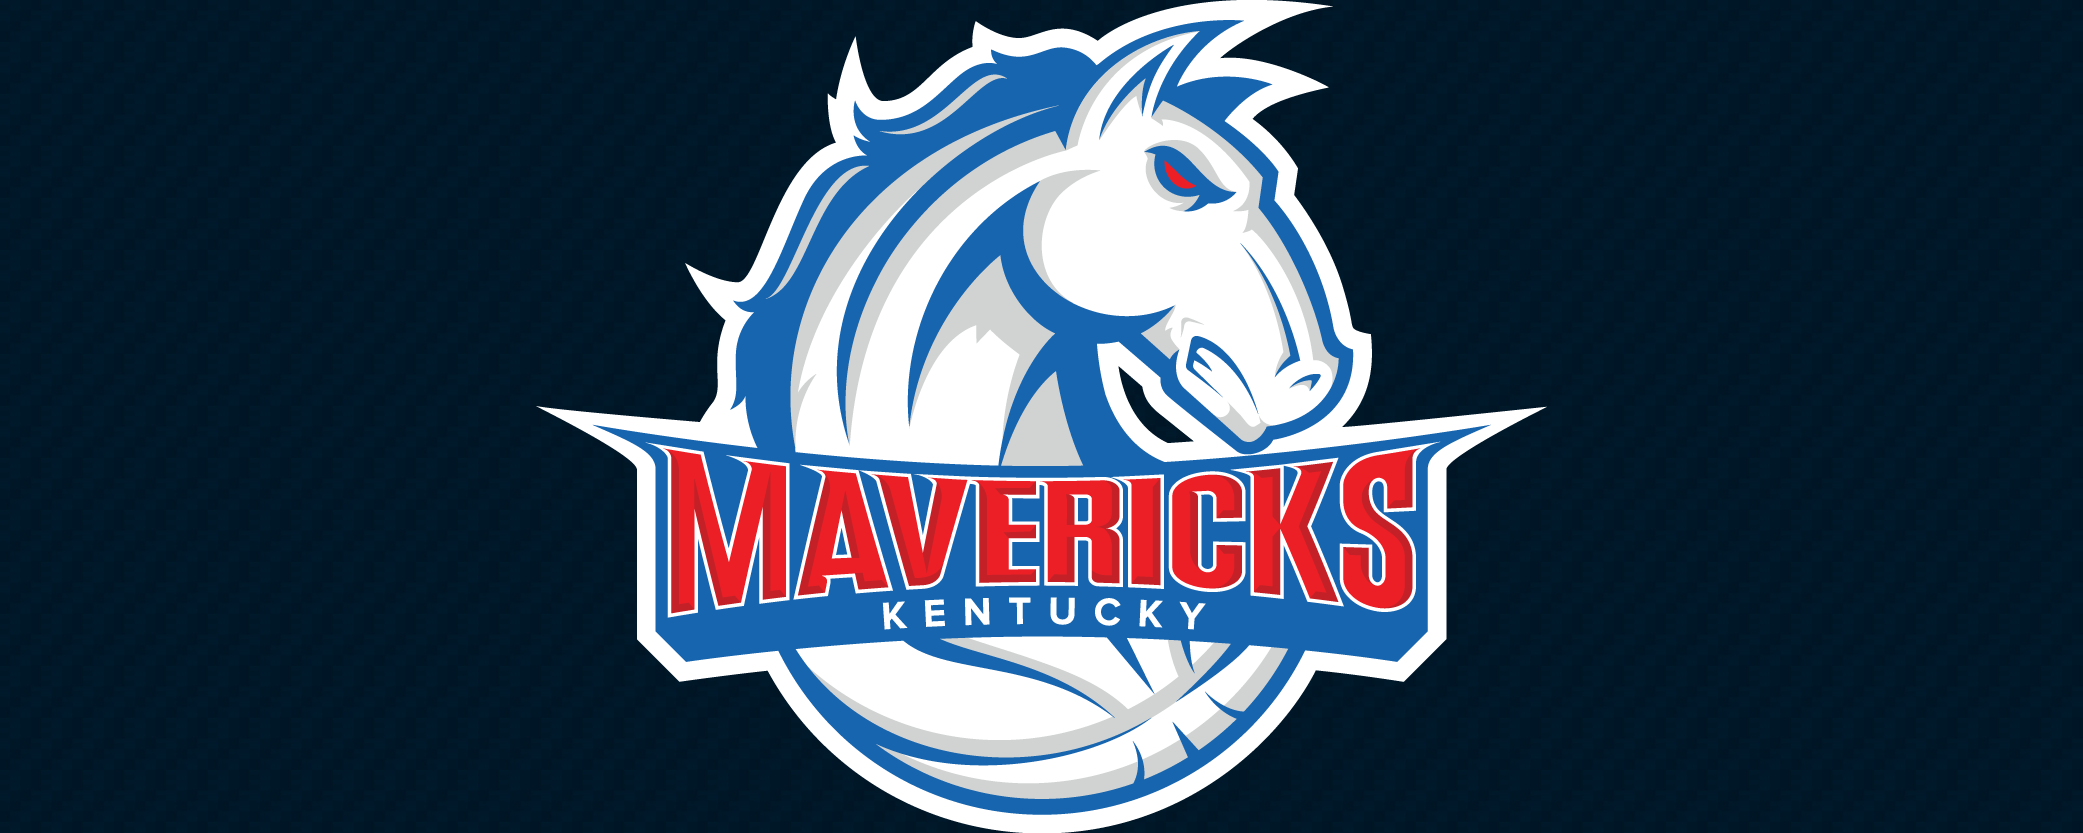 Kentucky Mavericks